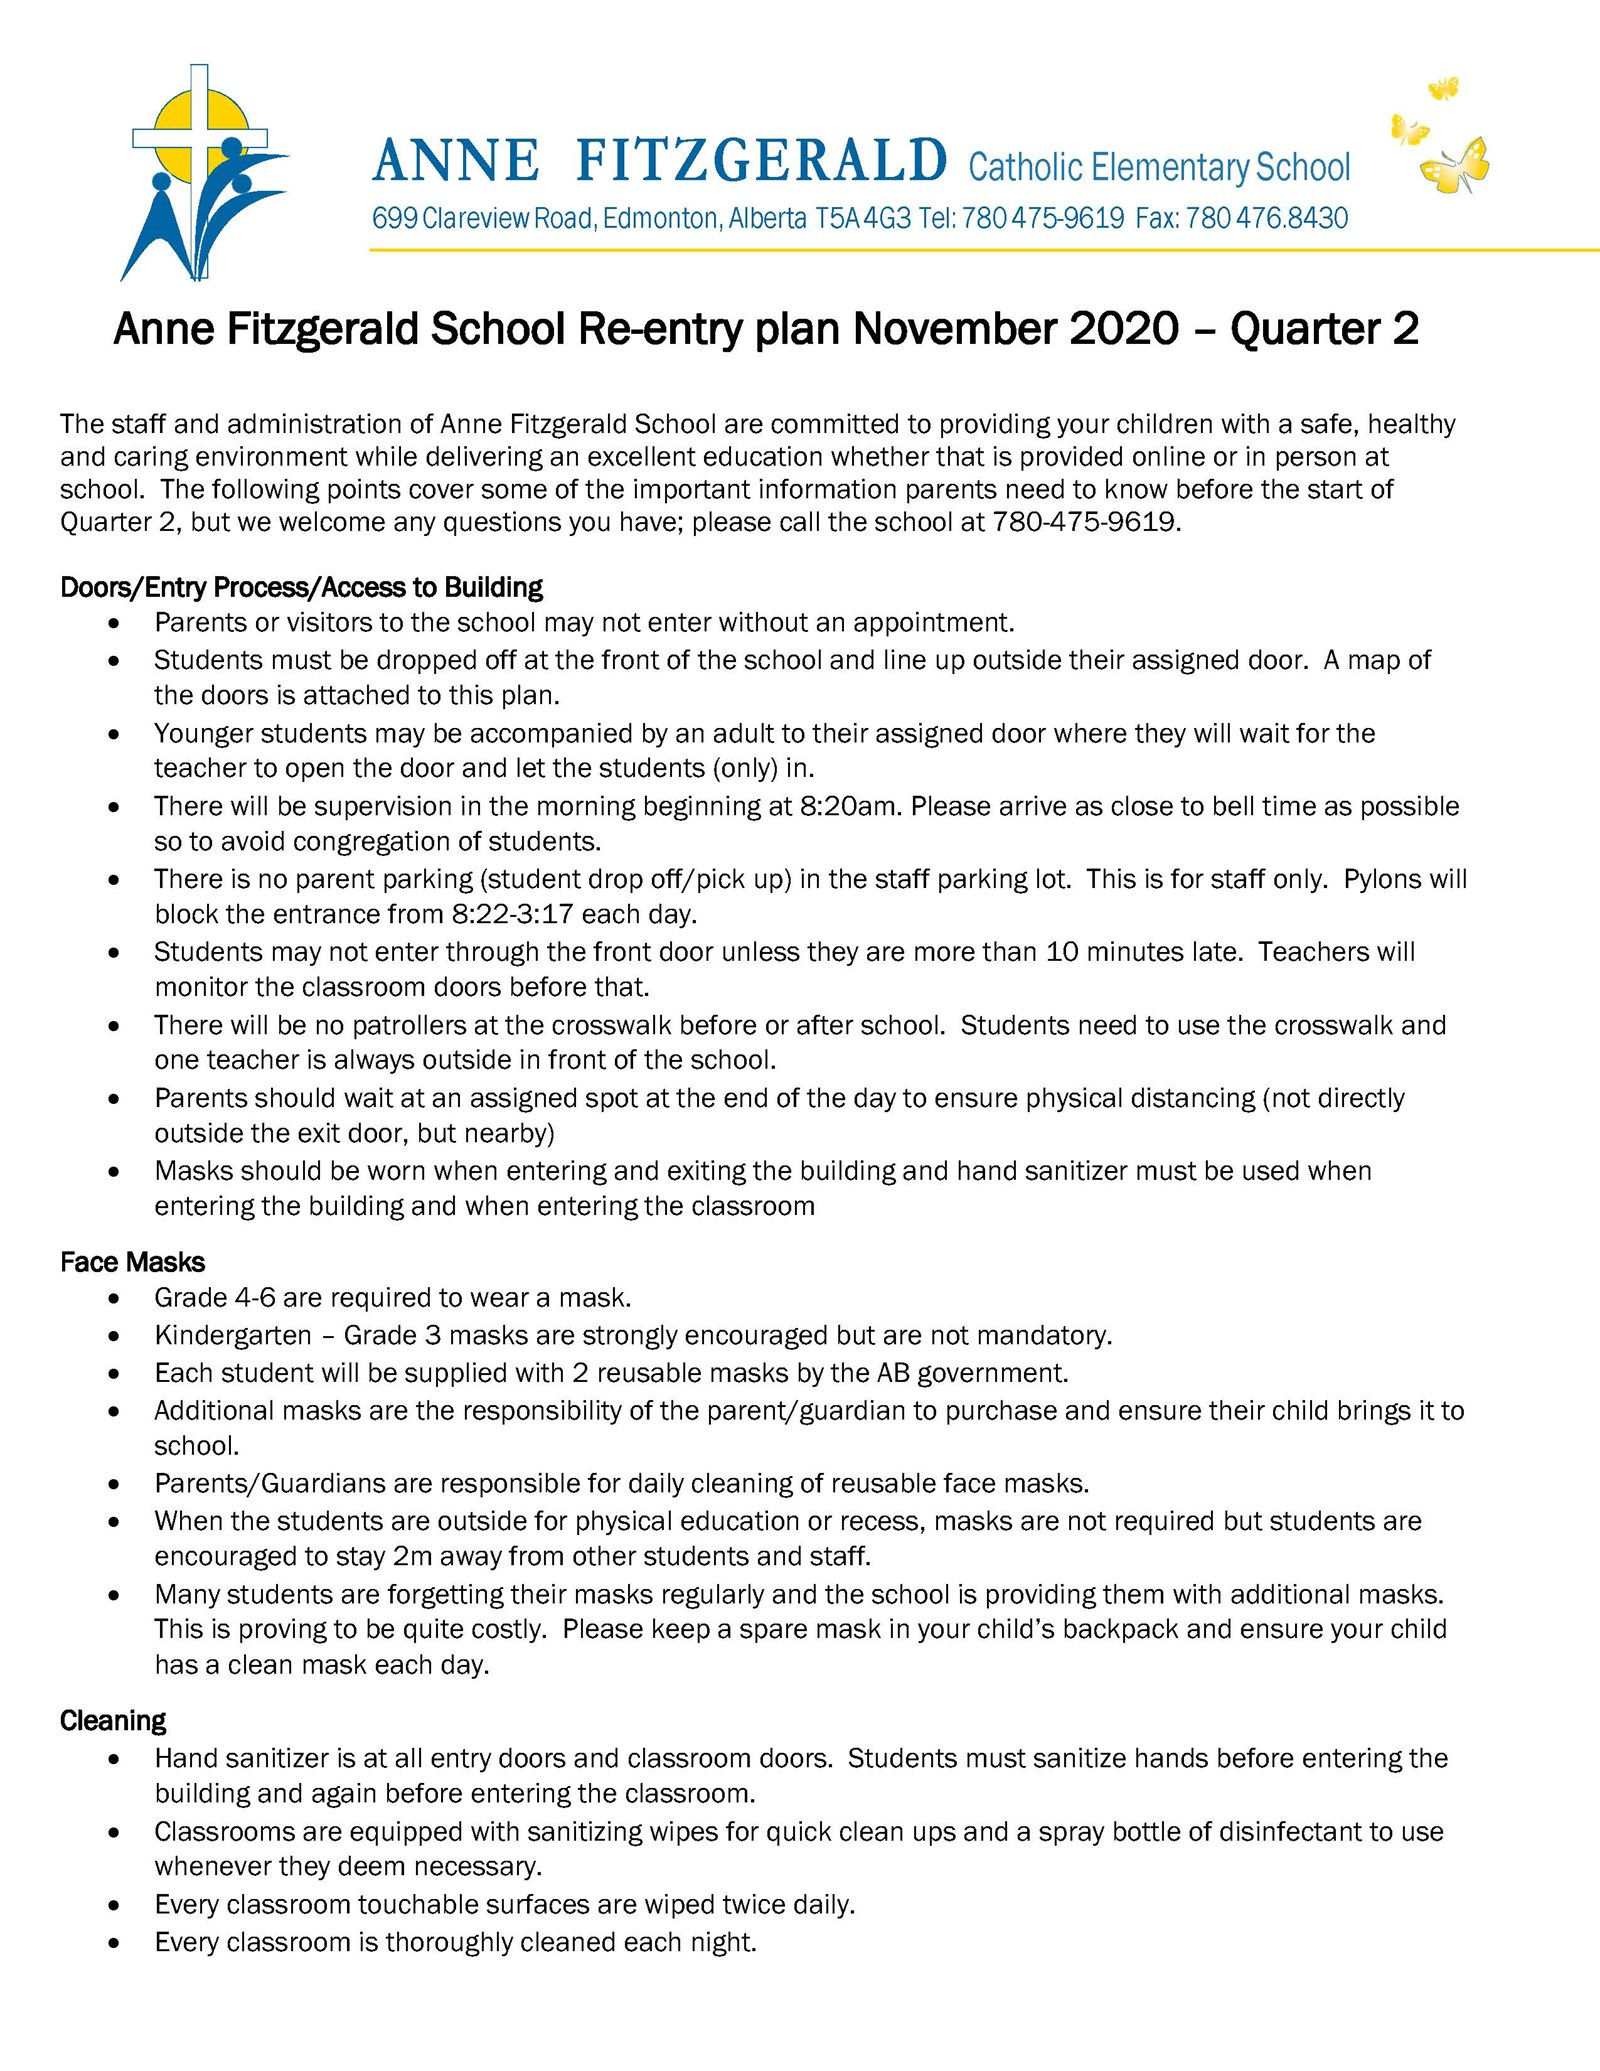 Anne Fitzgerald Re-Entry Plan for November (Q2) 2020-1_Page_1.jpg